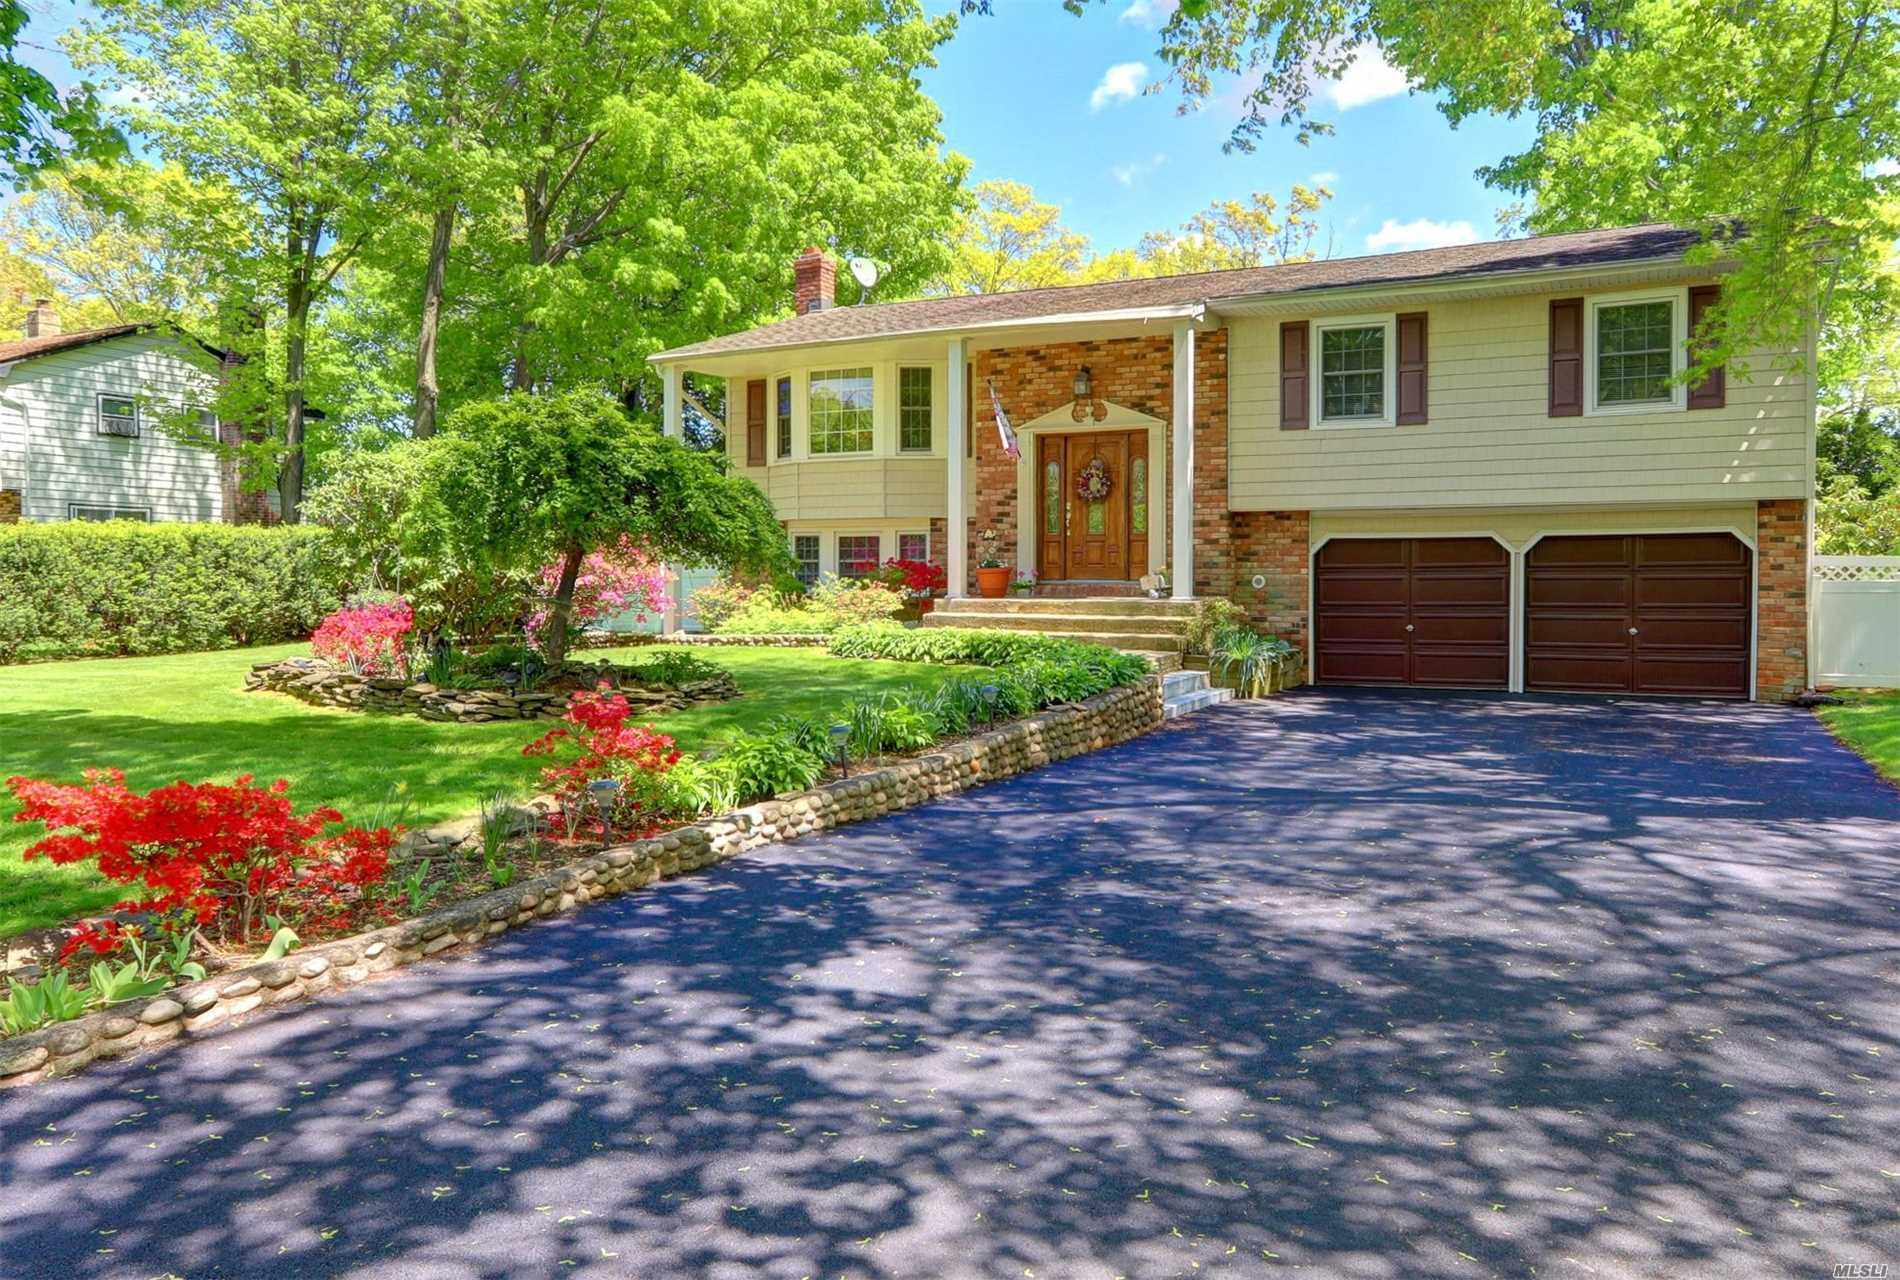 Desirable Commack Bird Section w/low Hauppauge Taxes 9988.14 w/Basic Star; High Ranch with LR, DR, EIK, Master BR w/Master Bath, 3 Add'l BRS, 1.5 Add'l Bath, Family Rm; I/G Pool, .35 Acre, Gas Heat; Hardwood Floors; Very Well Maintained Home. New Double Driveway. Close to All Shops/ Restaurant/Beaches/Parks & Parkways- Commuters Dream!, Pines Elementary School